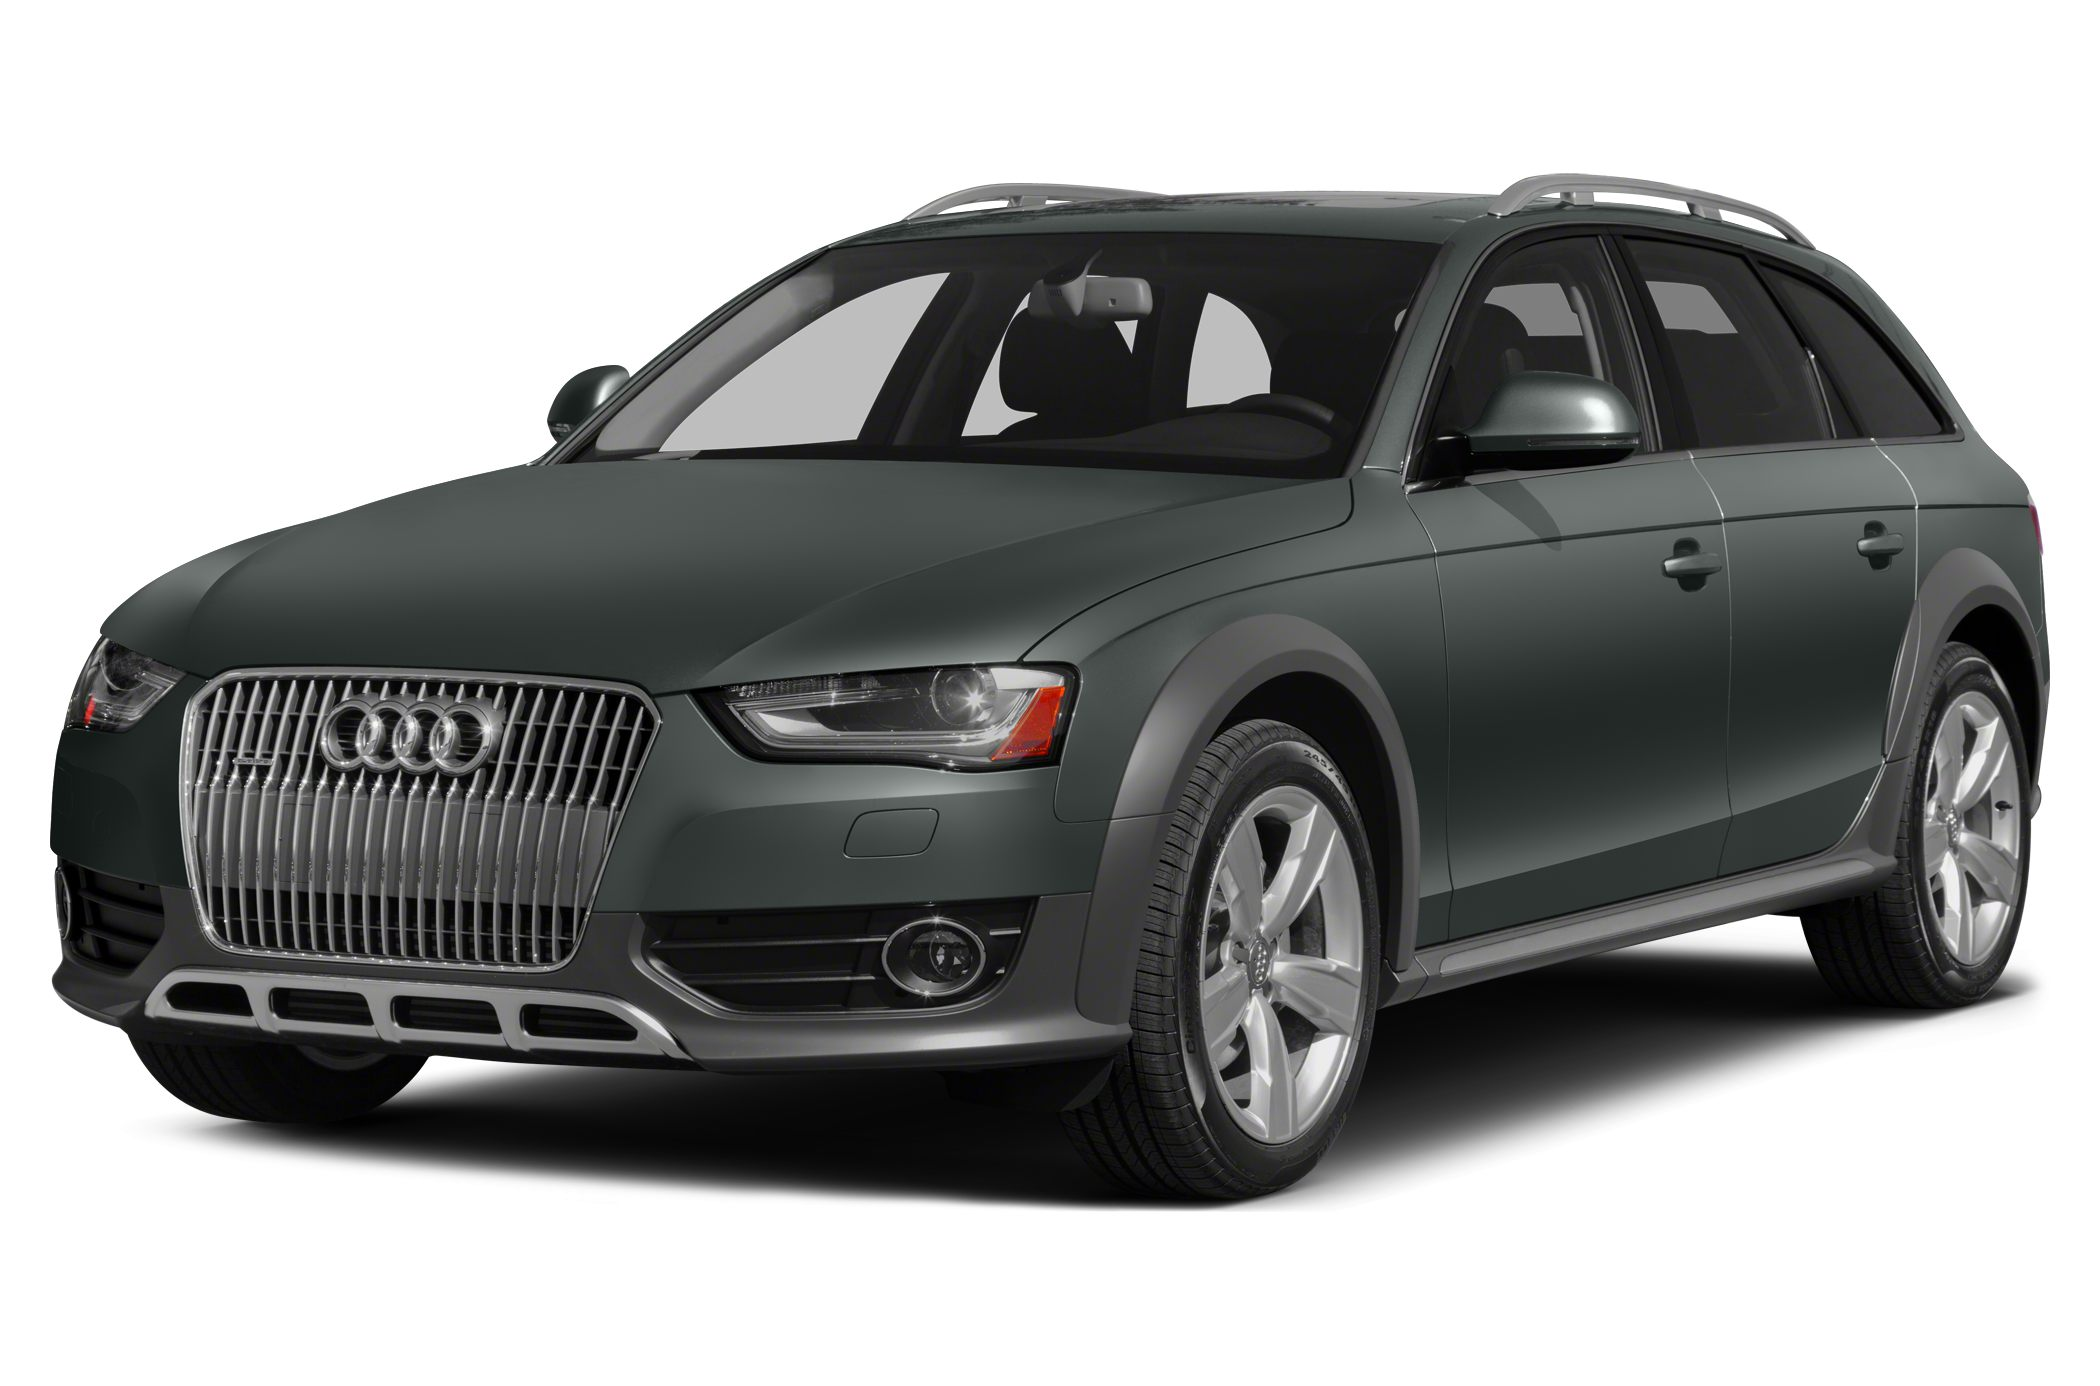 2015 Audi Allroad 2.0T Premium Wagon for sale in Cockeysville for $49,100 with 0 miles.